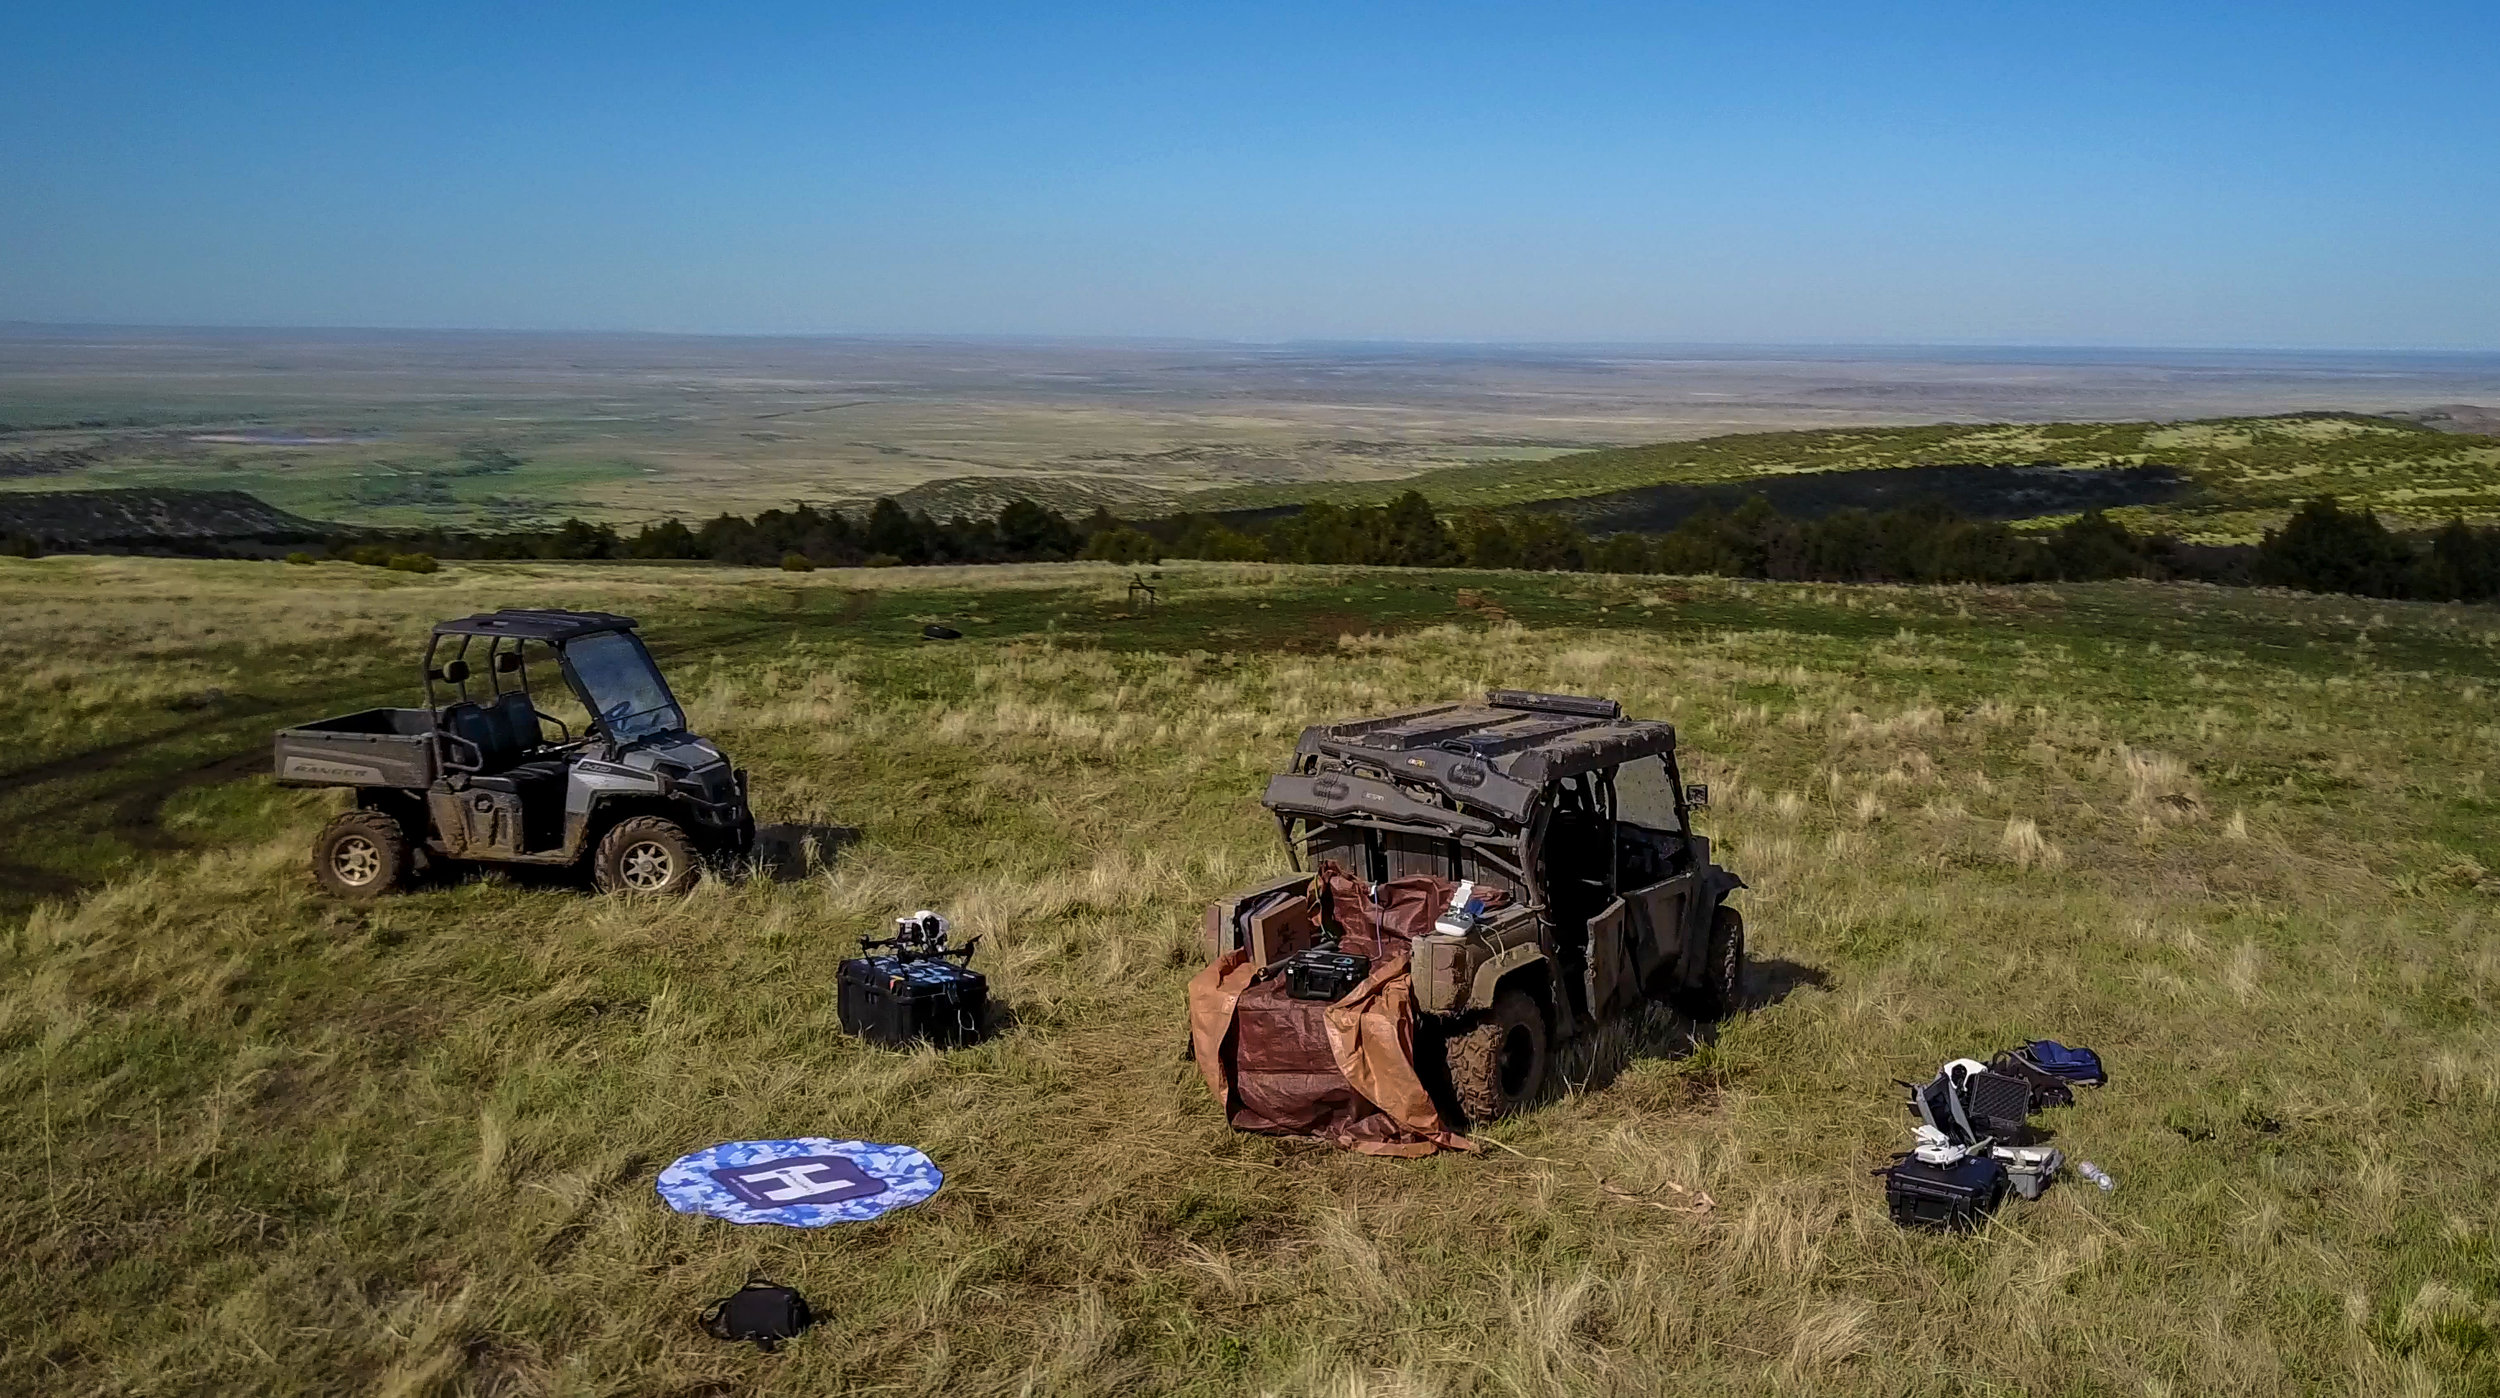 Designated takeoff area with a helipad, GPC cases, UTV's and two Inspire 1's while conducting a water density mapping mission.